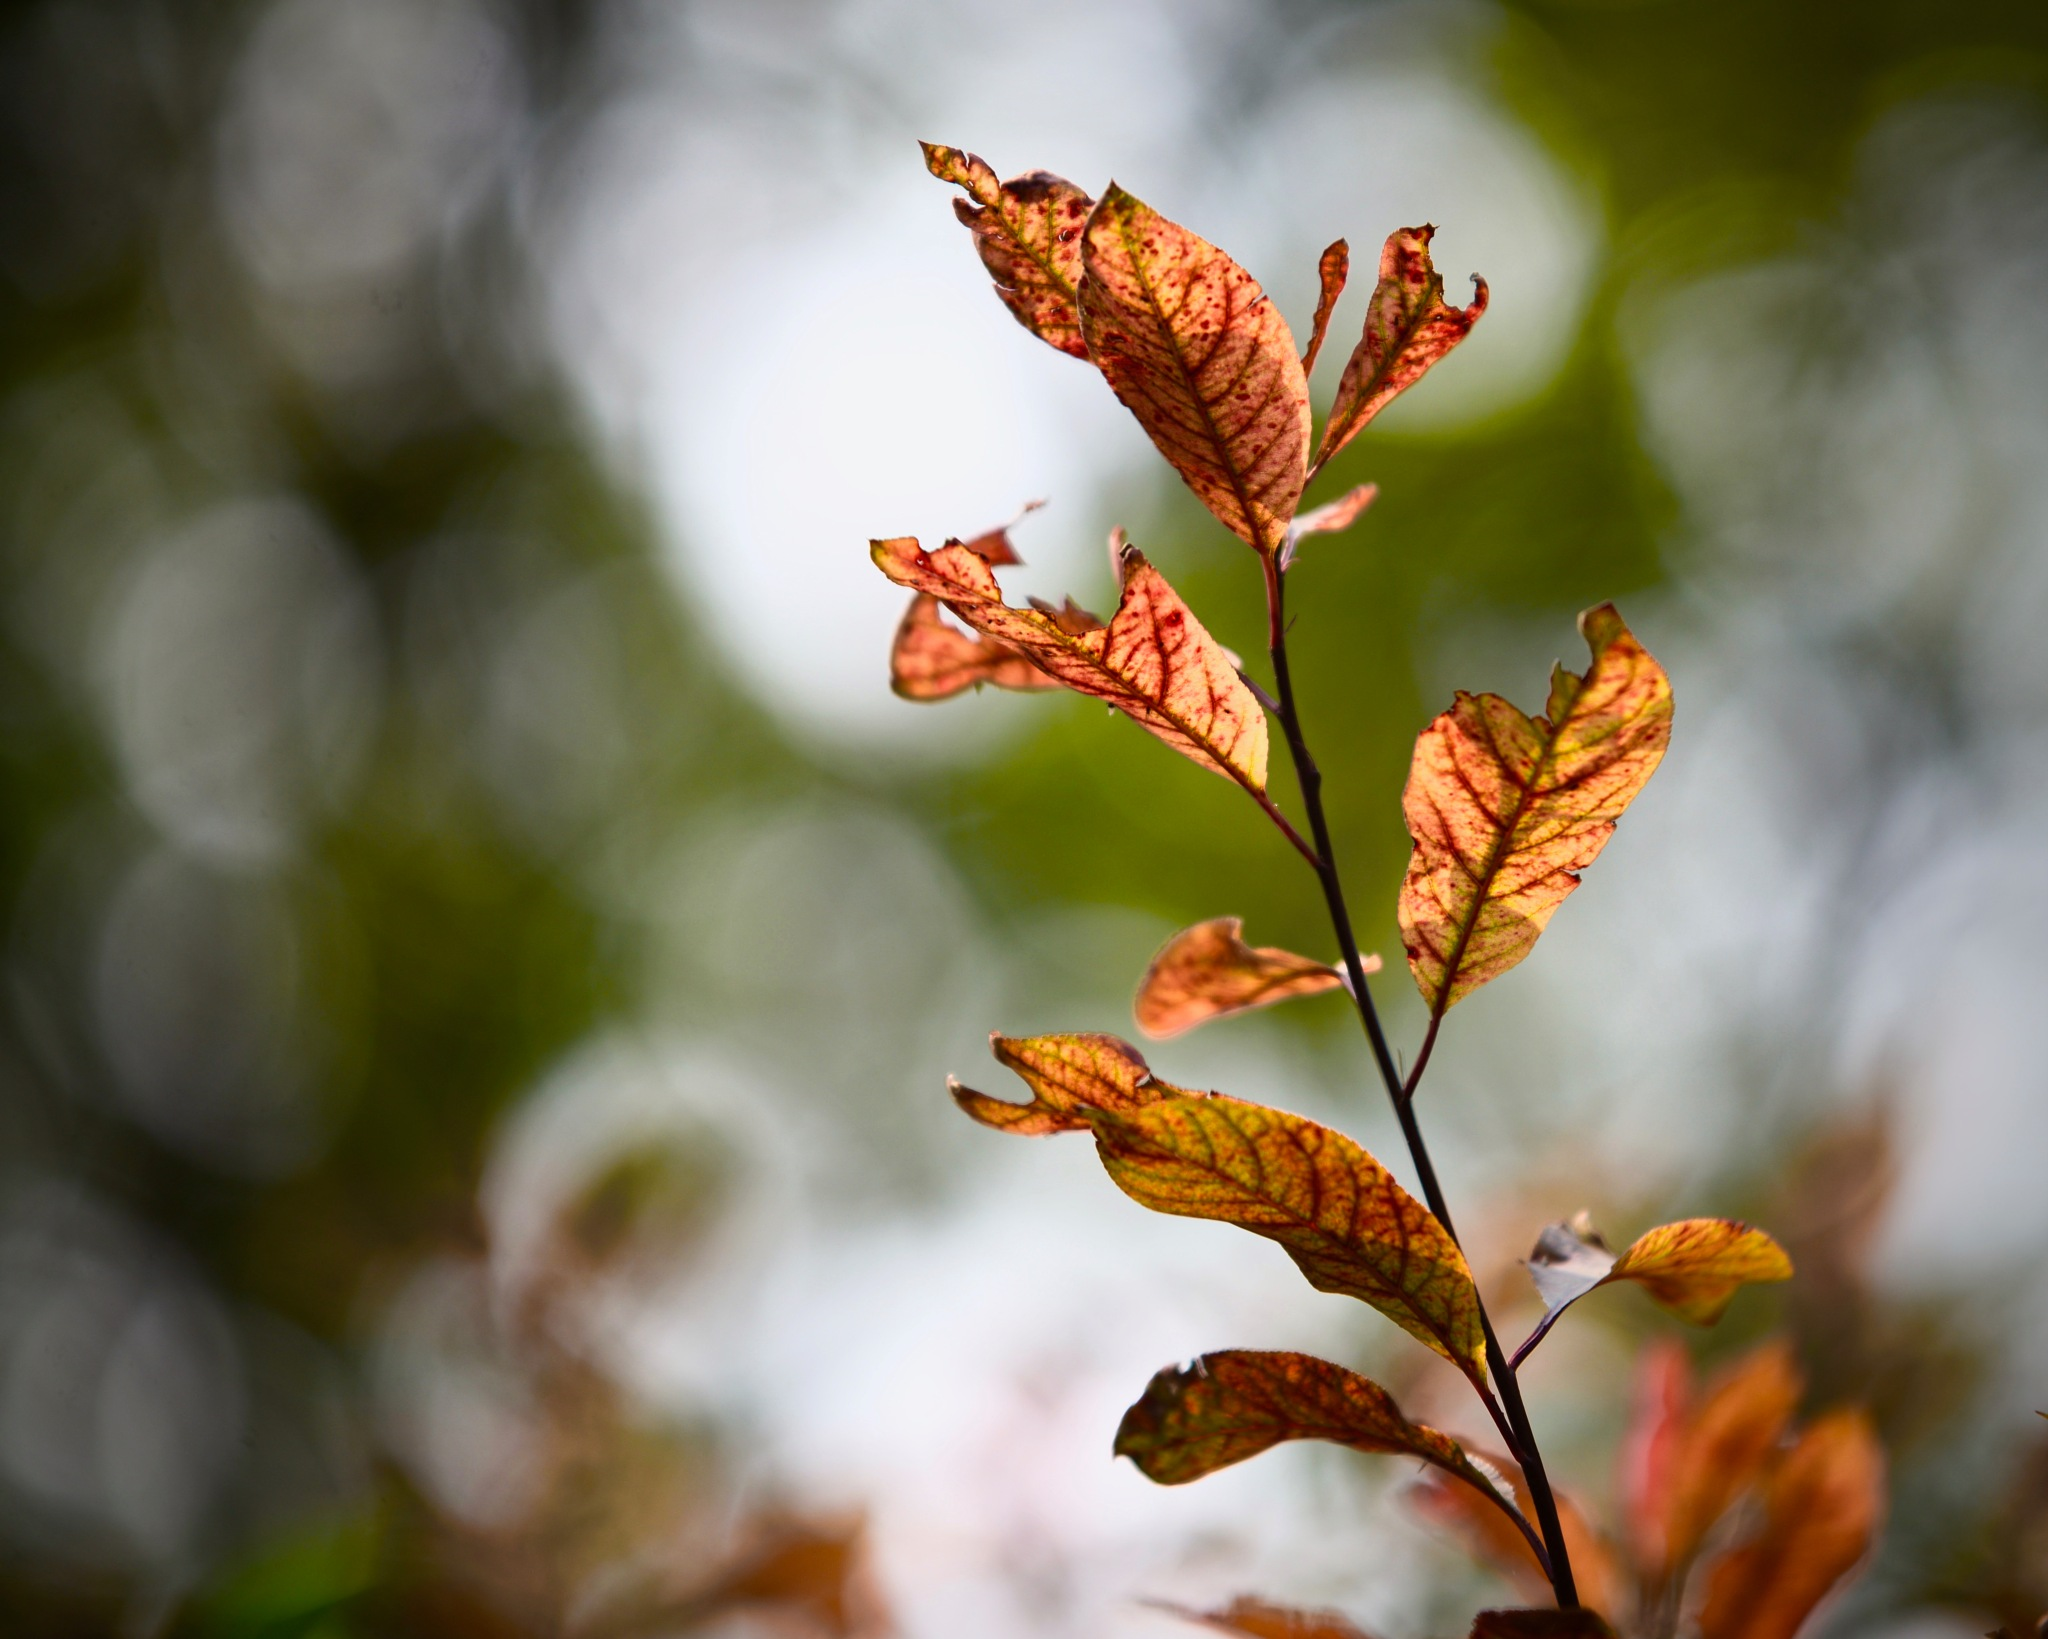 Rusty Leaves by Francisco Little